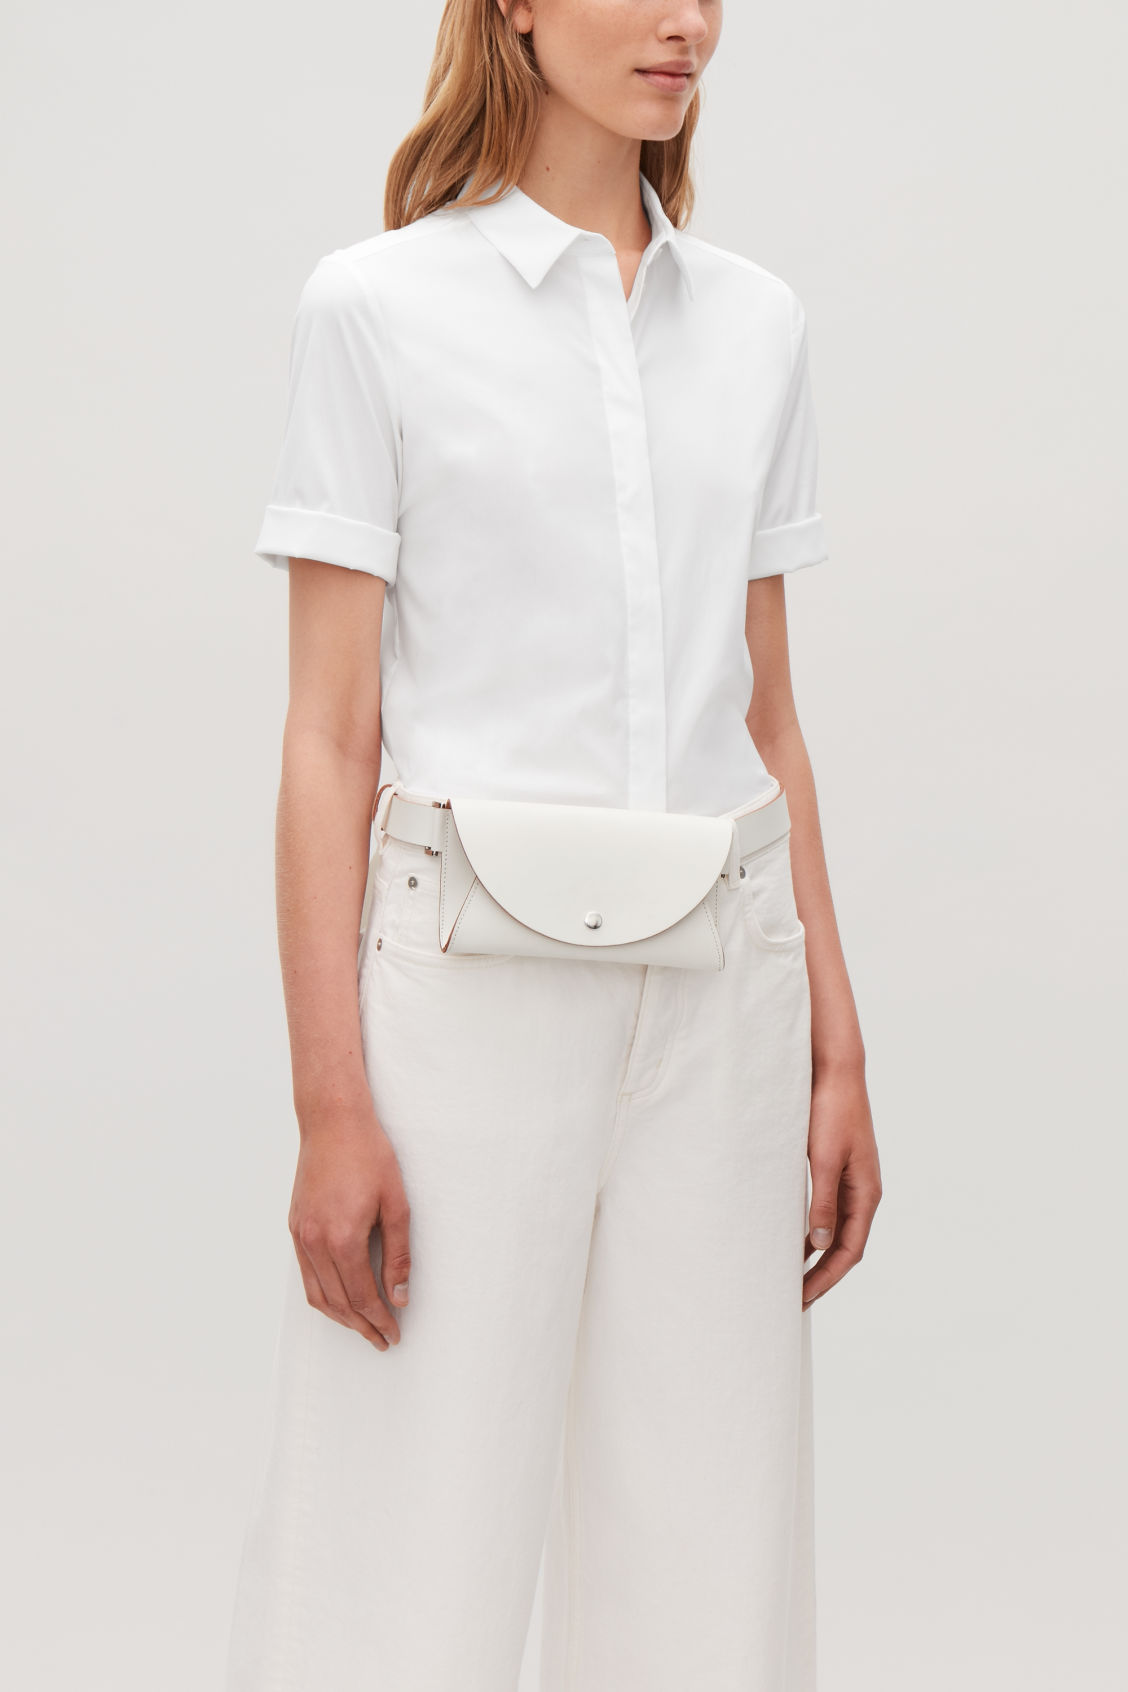 Detailed image of Cos detachable leather belt bag in white